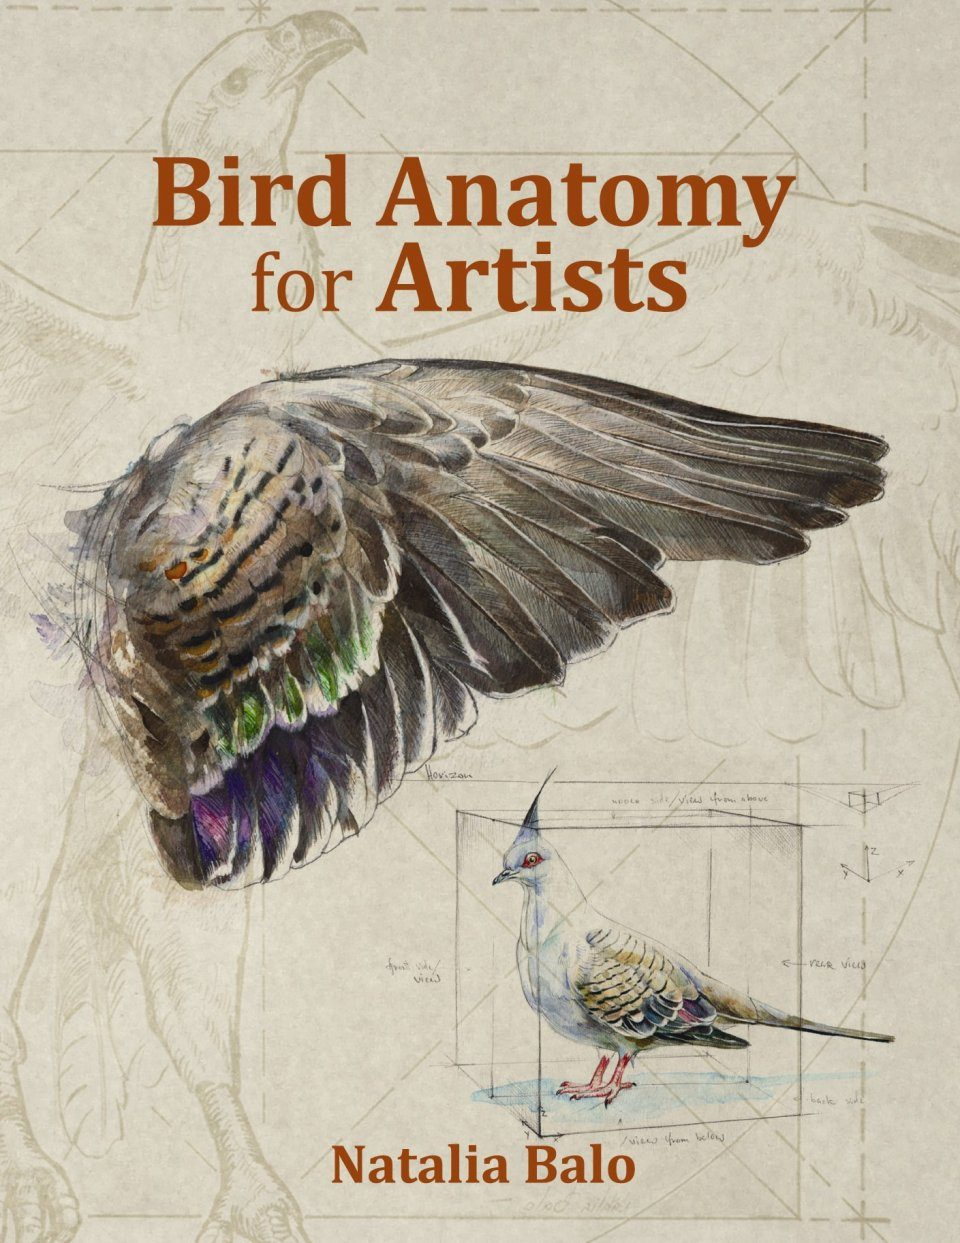 Bird Anatomy for Artists: Natalia Balo, Penny Olsen | NHBS Book Shop